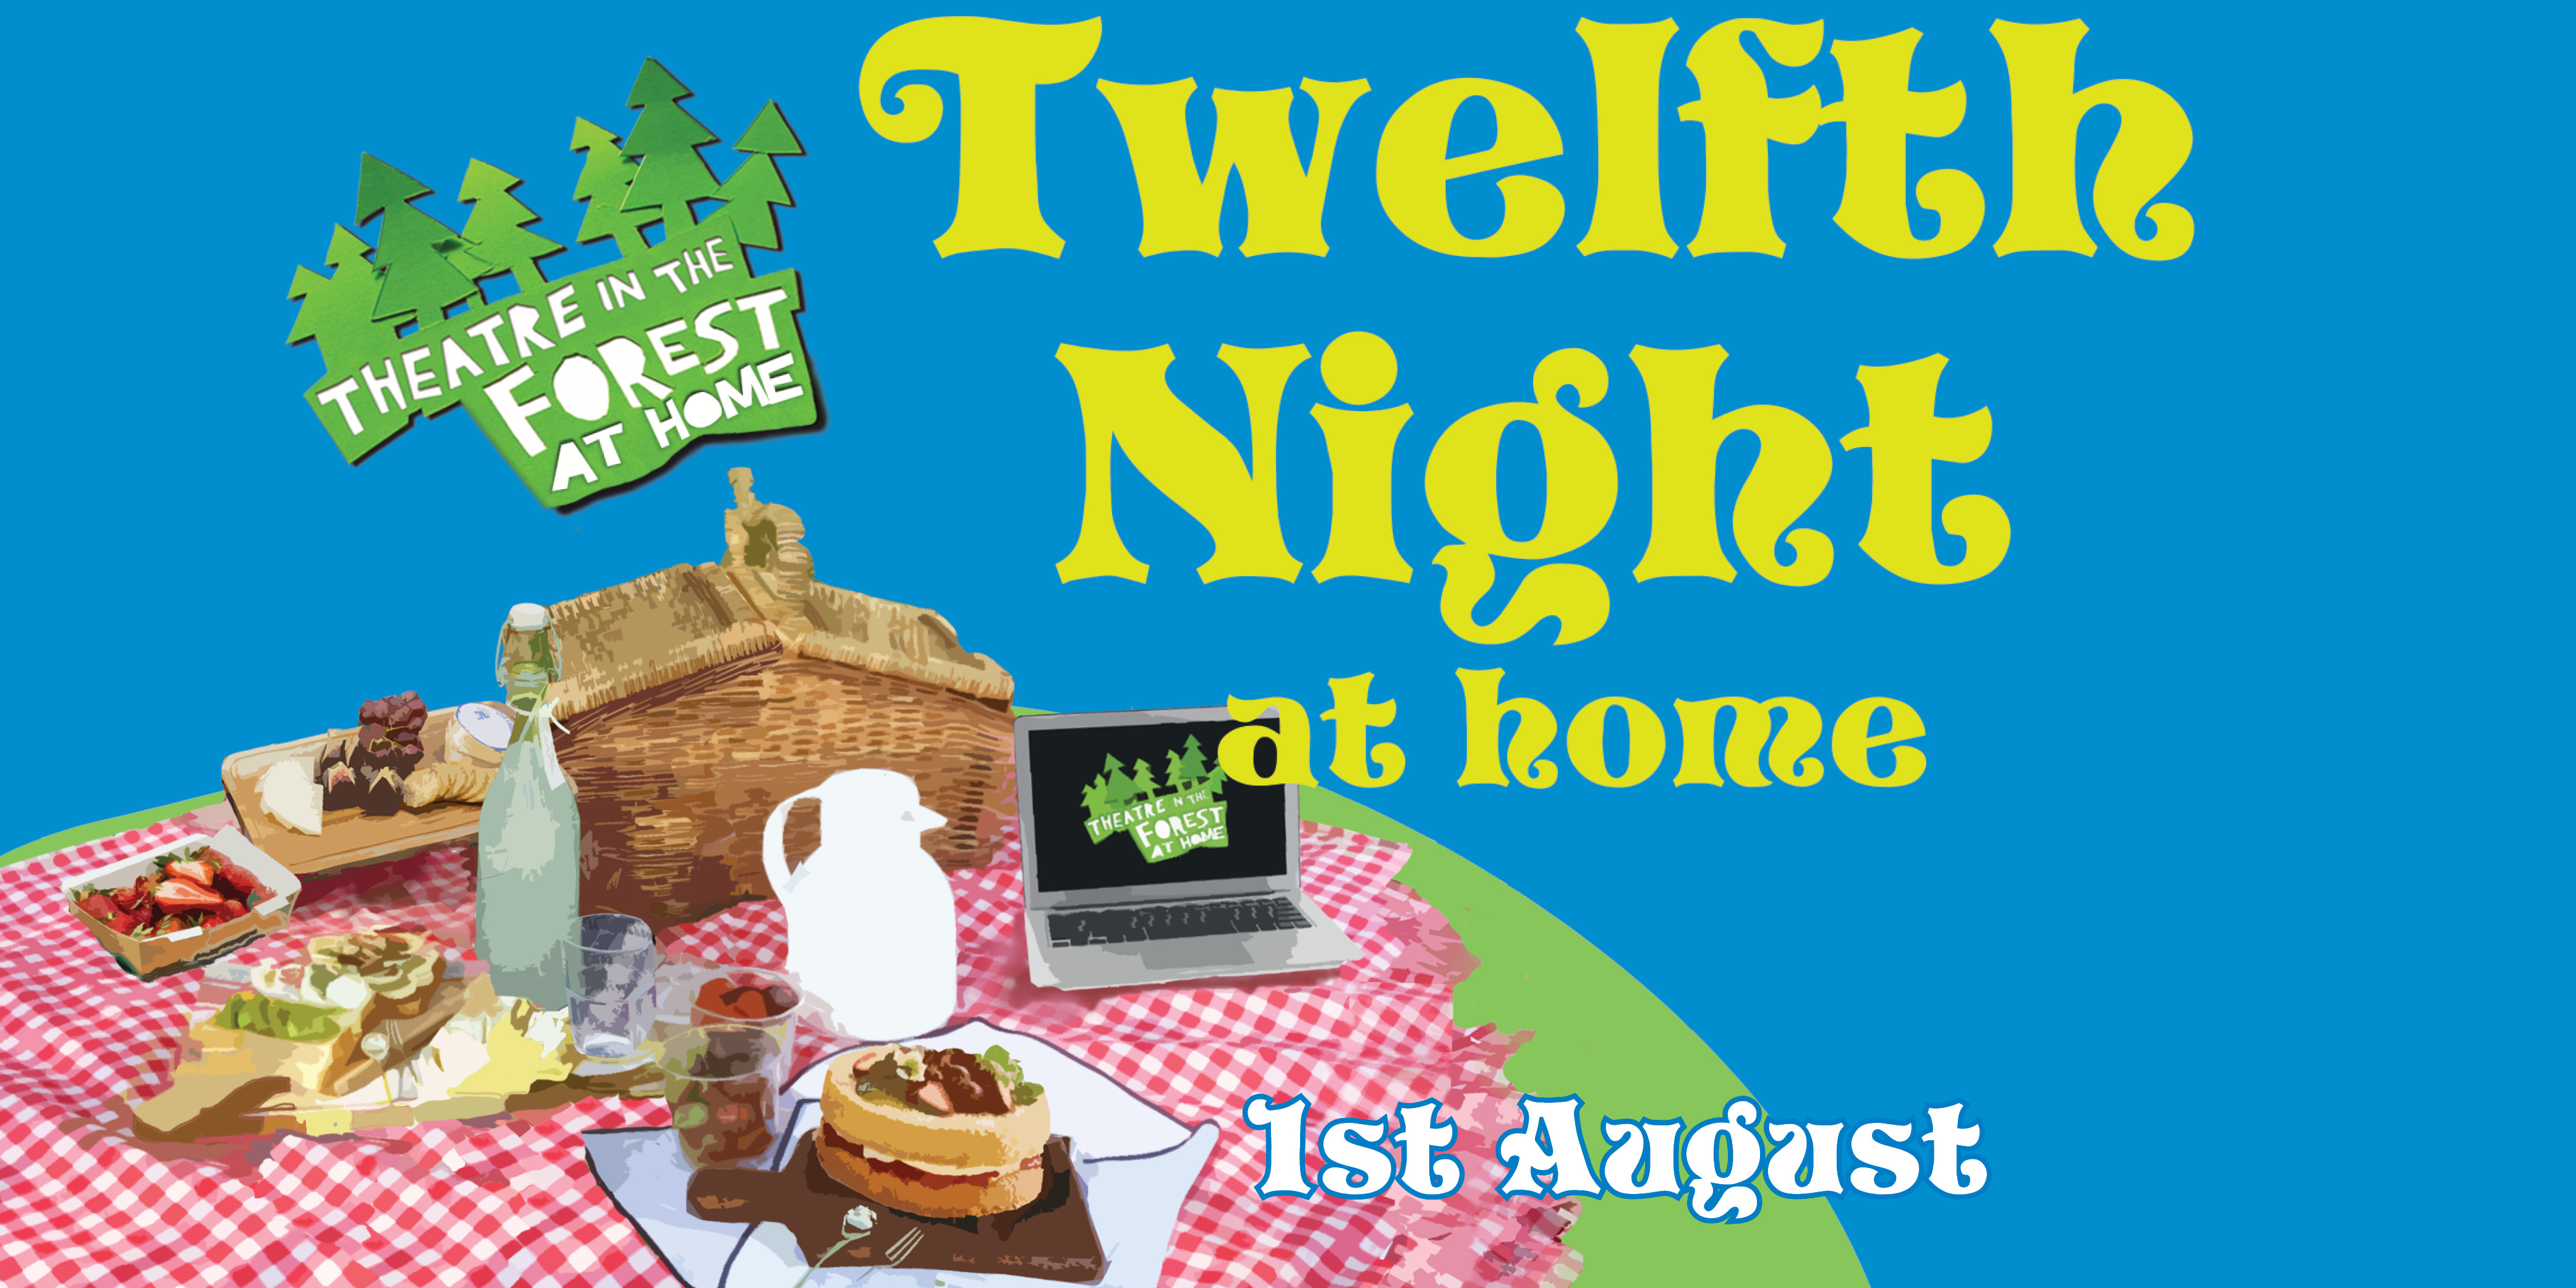 Theatre in the Forest Gala